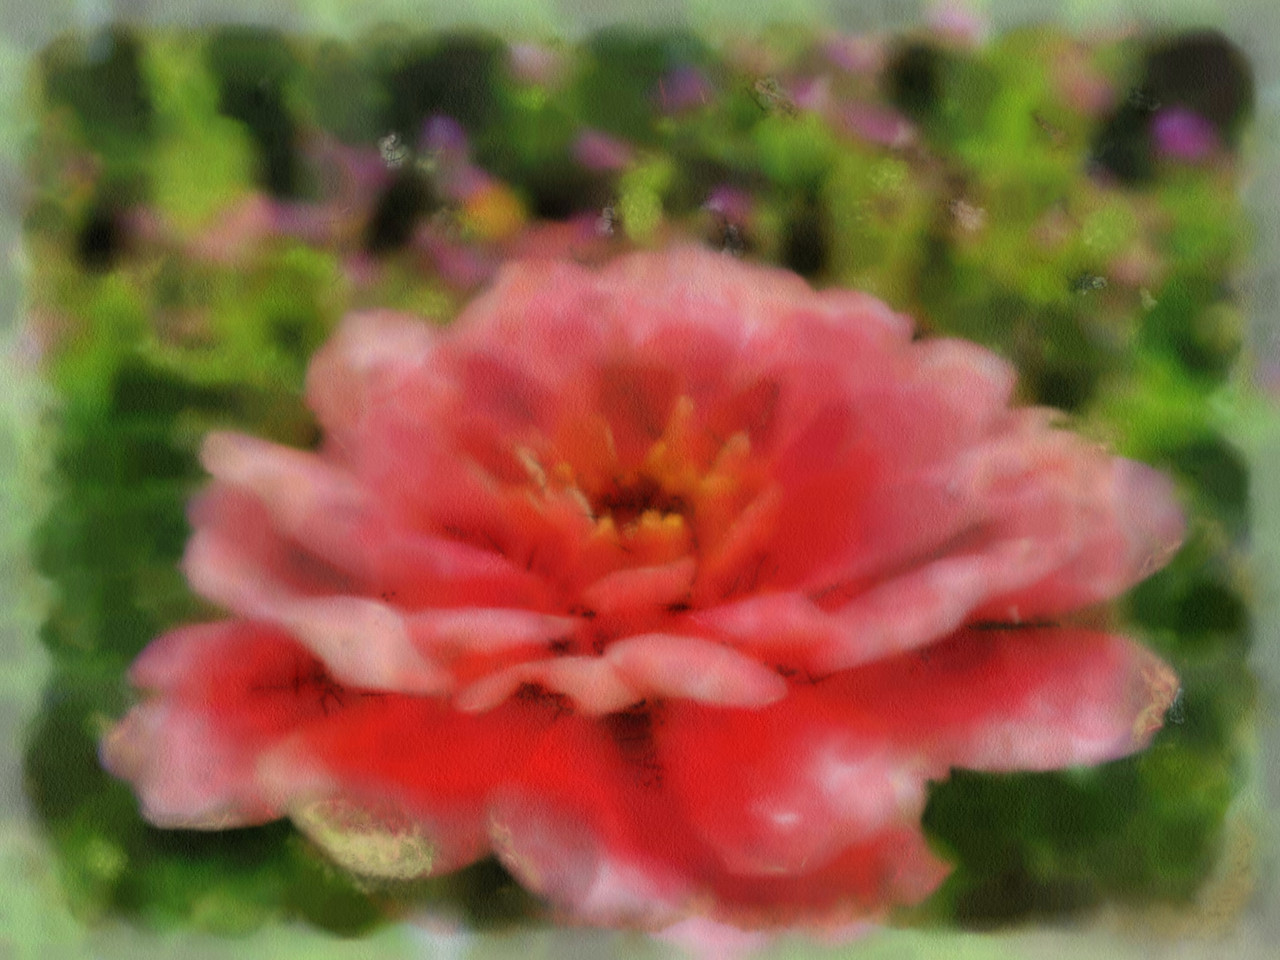 I've been sick the past few days and haven't even had my camera out. Dabbling is about all I have the energy for. I wanted to create something that cheered me up so, here you have it.  A worked pink zinnia. Hope you're all well.